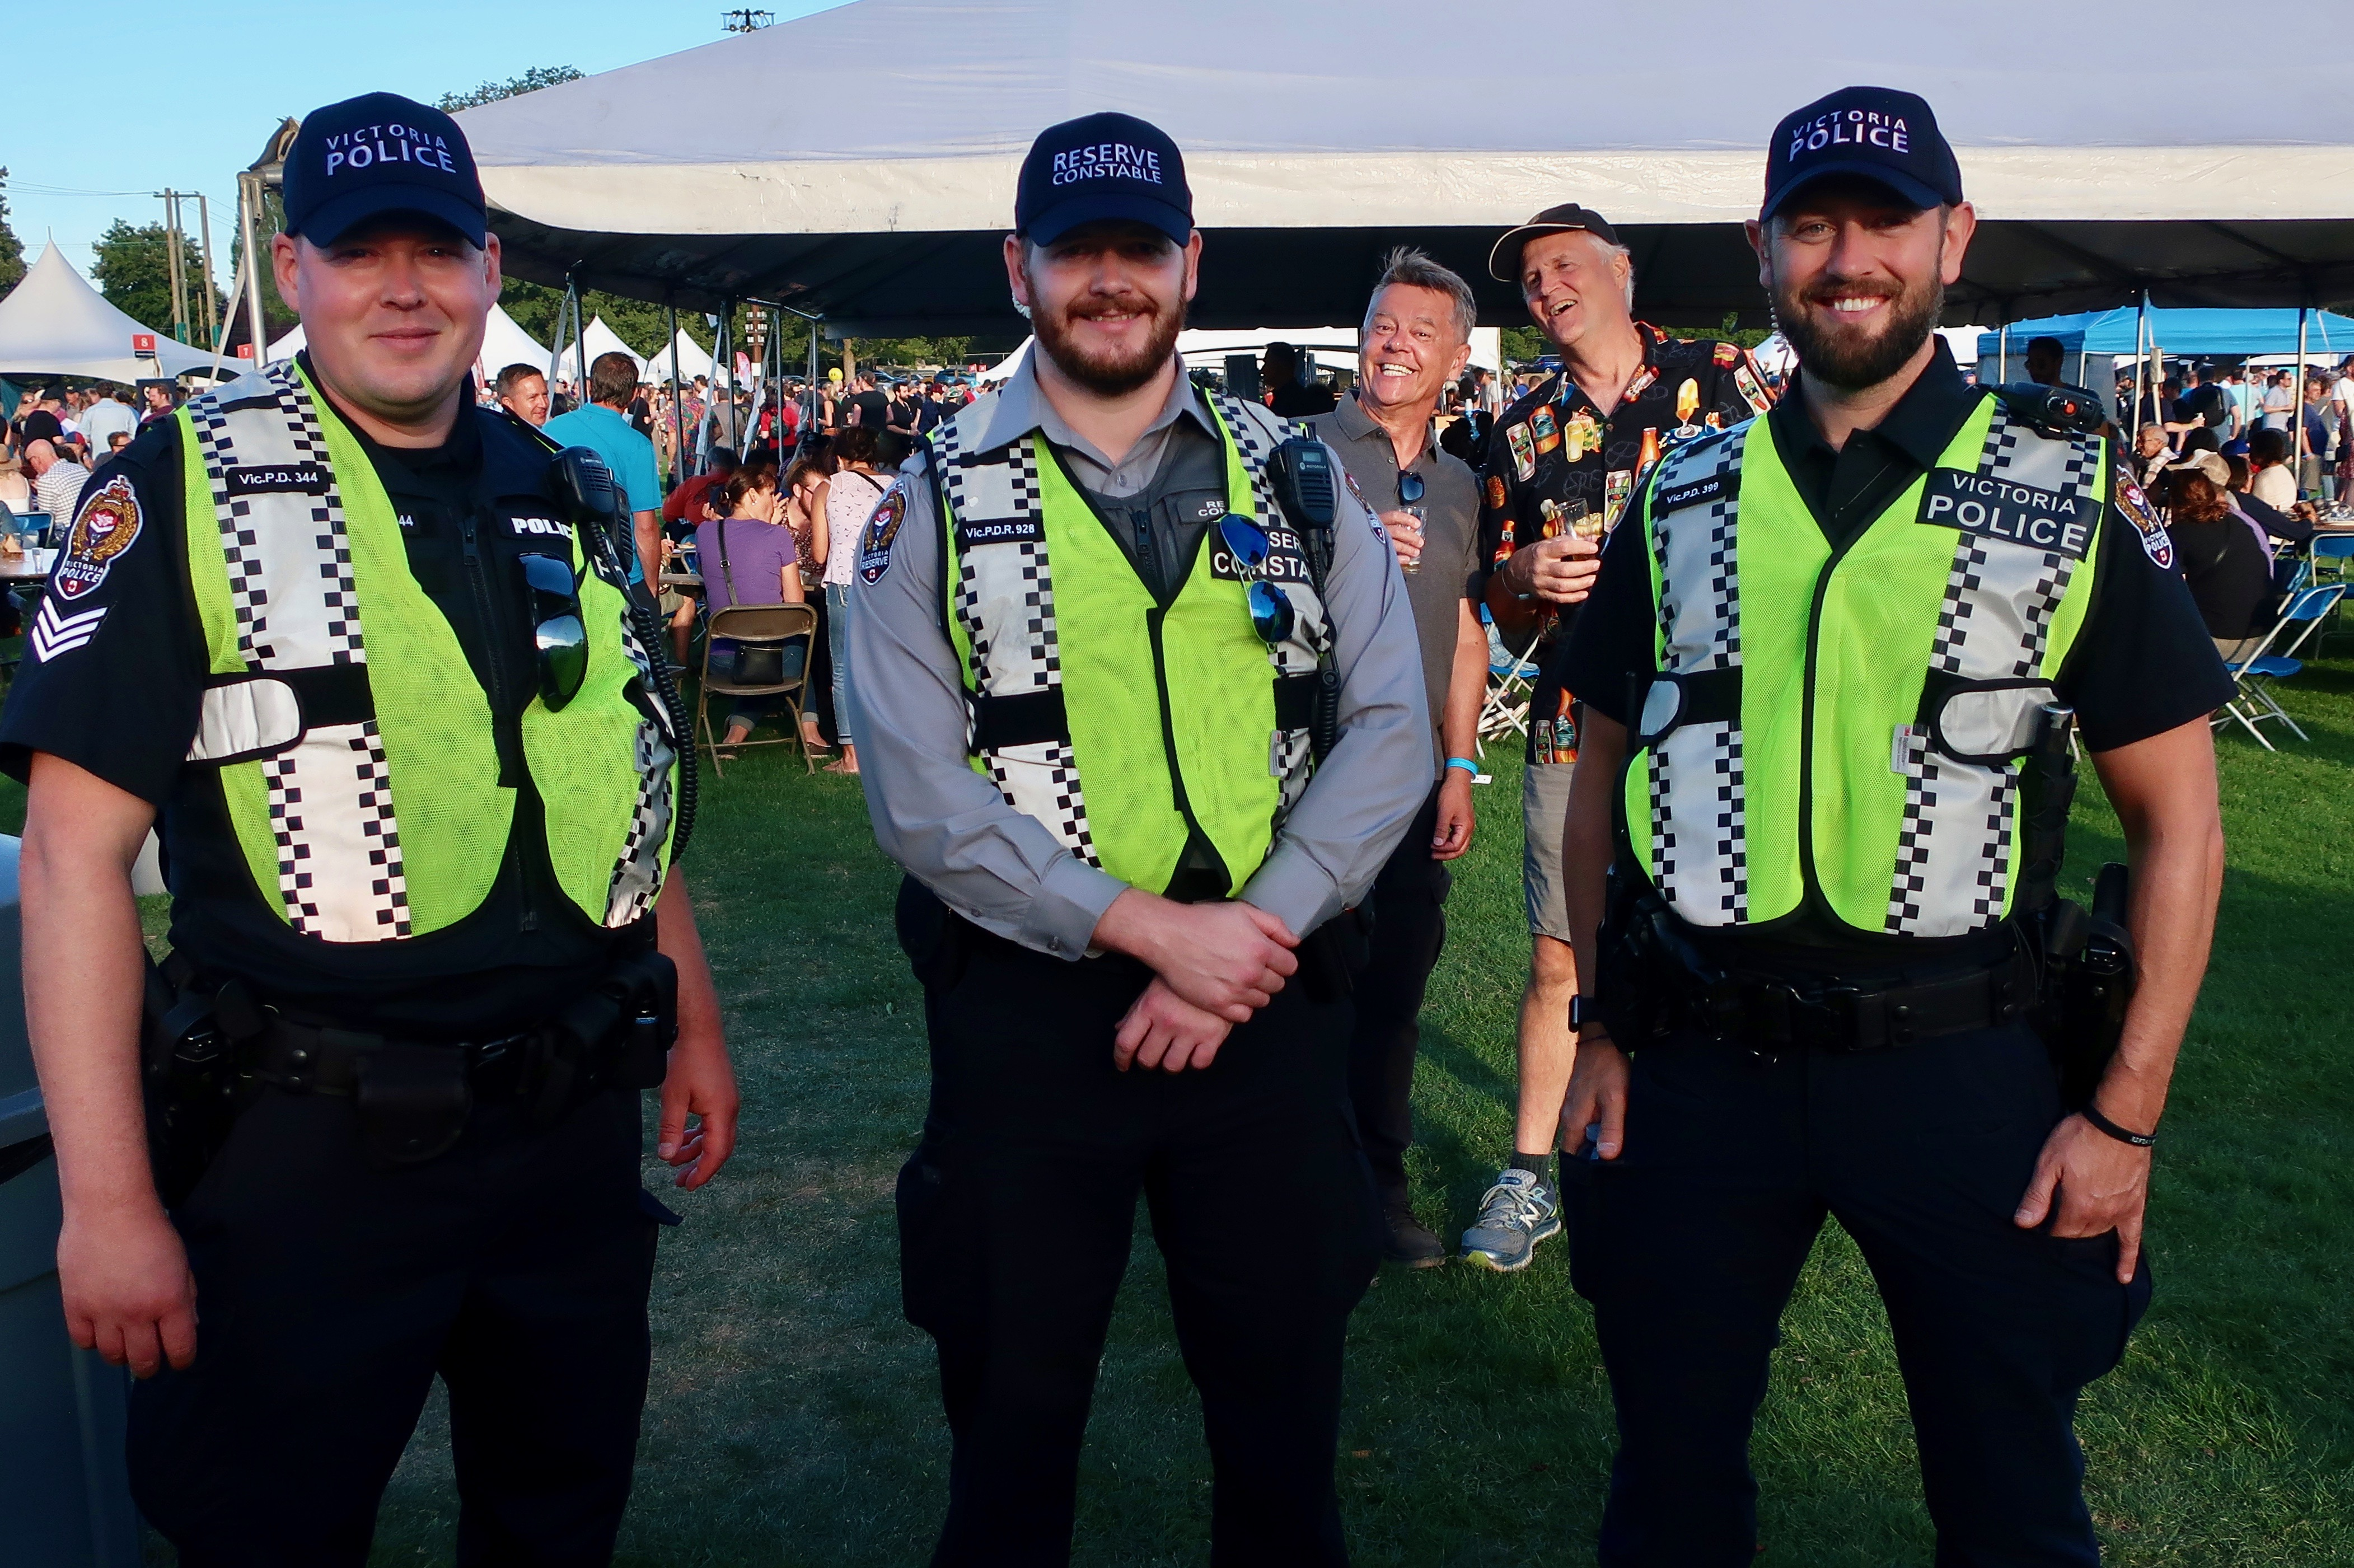 A few of Victoria's finest with a photo bomb at the 2019 Great Canadian Beer Festival.